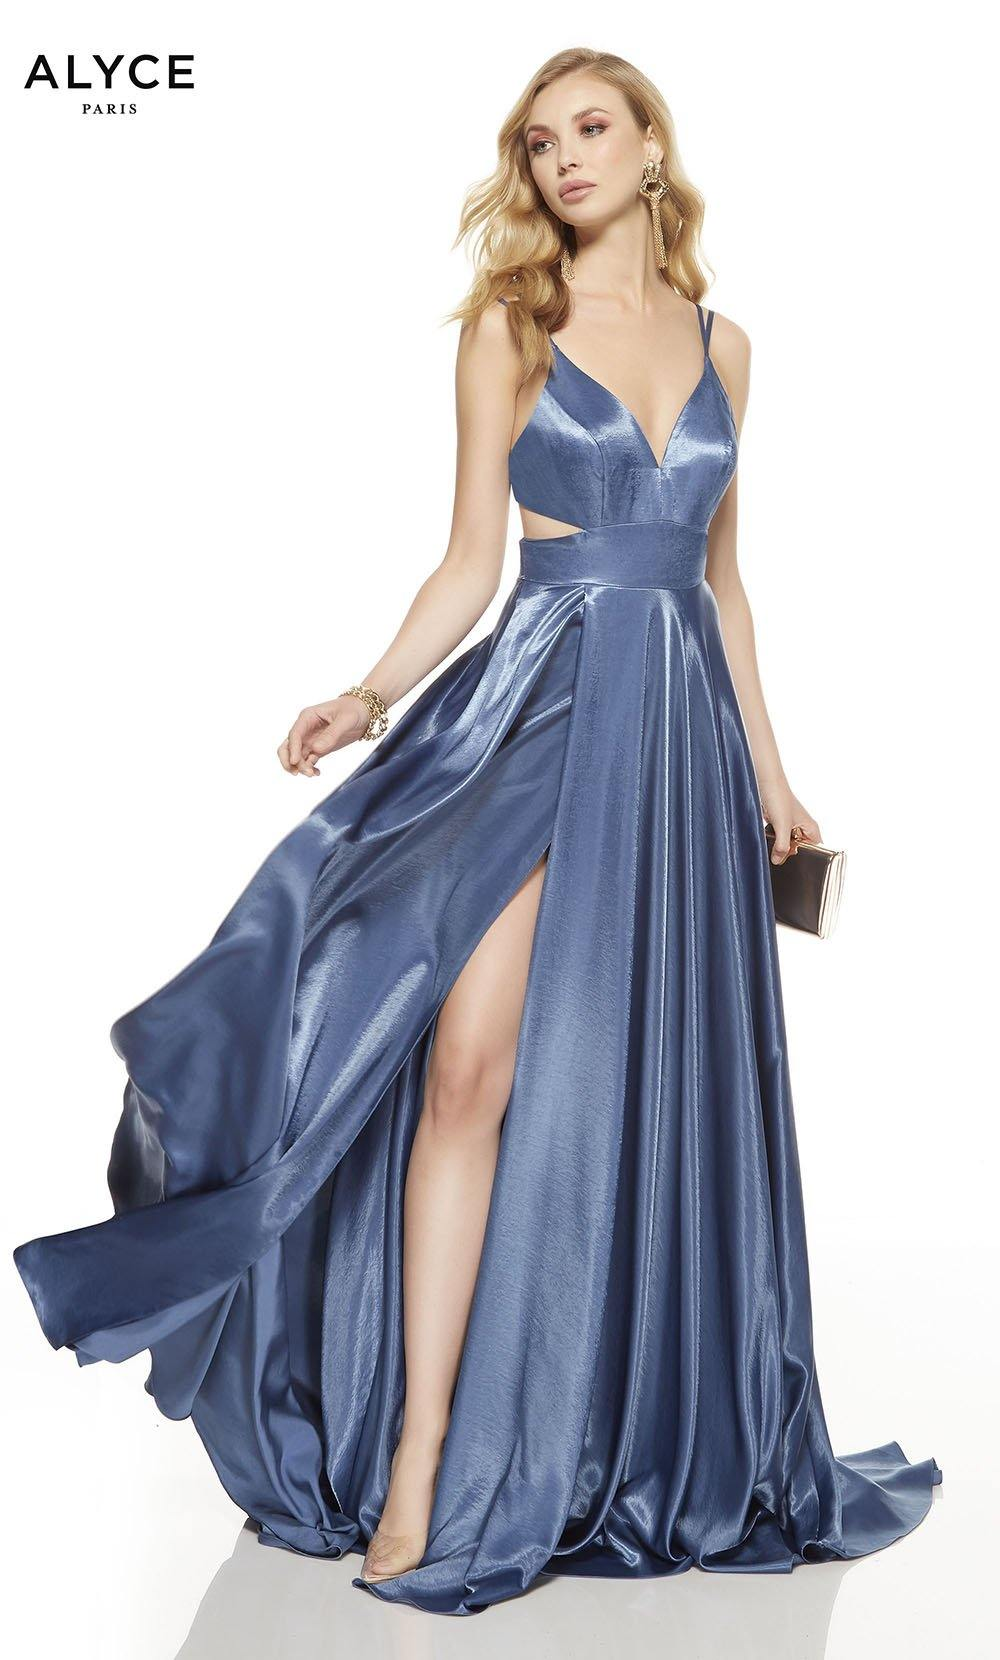 Deep French Blue prom dress with a v-neckline, side cutouts and a high slit